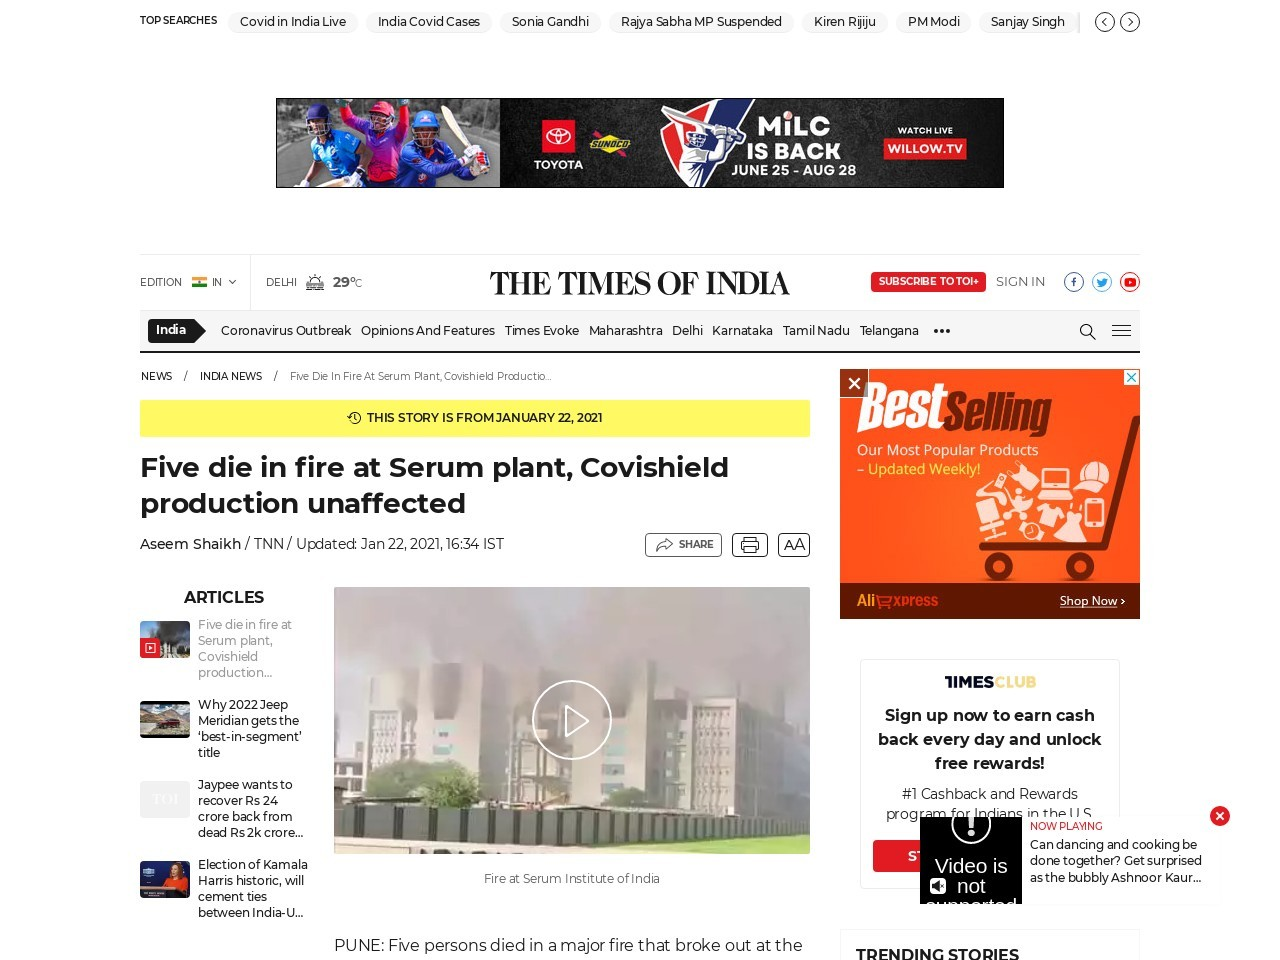 Serum Institute of India news: Five die in fire at Serum plant, Covishield production unaffected | India News - Times of India